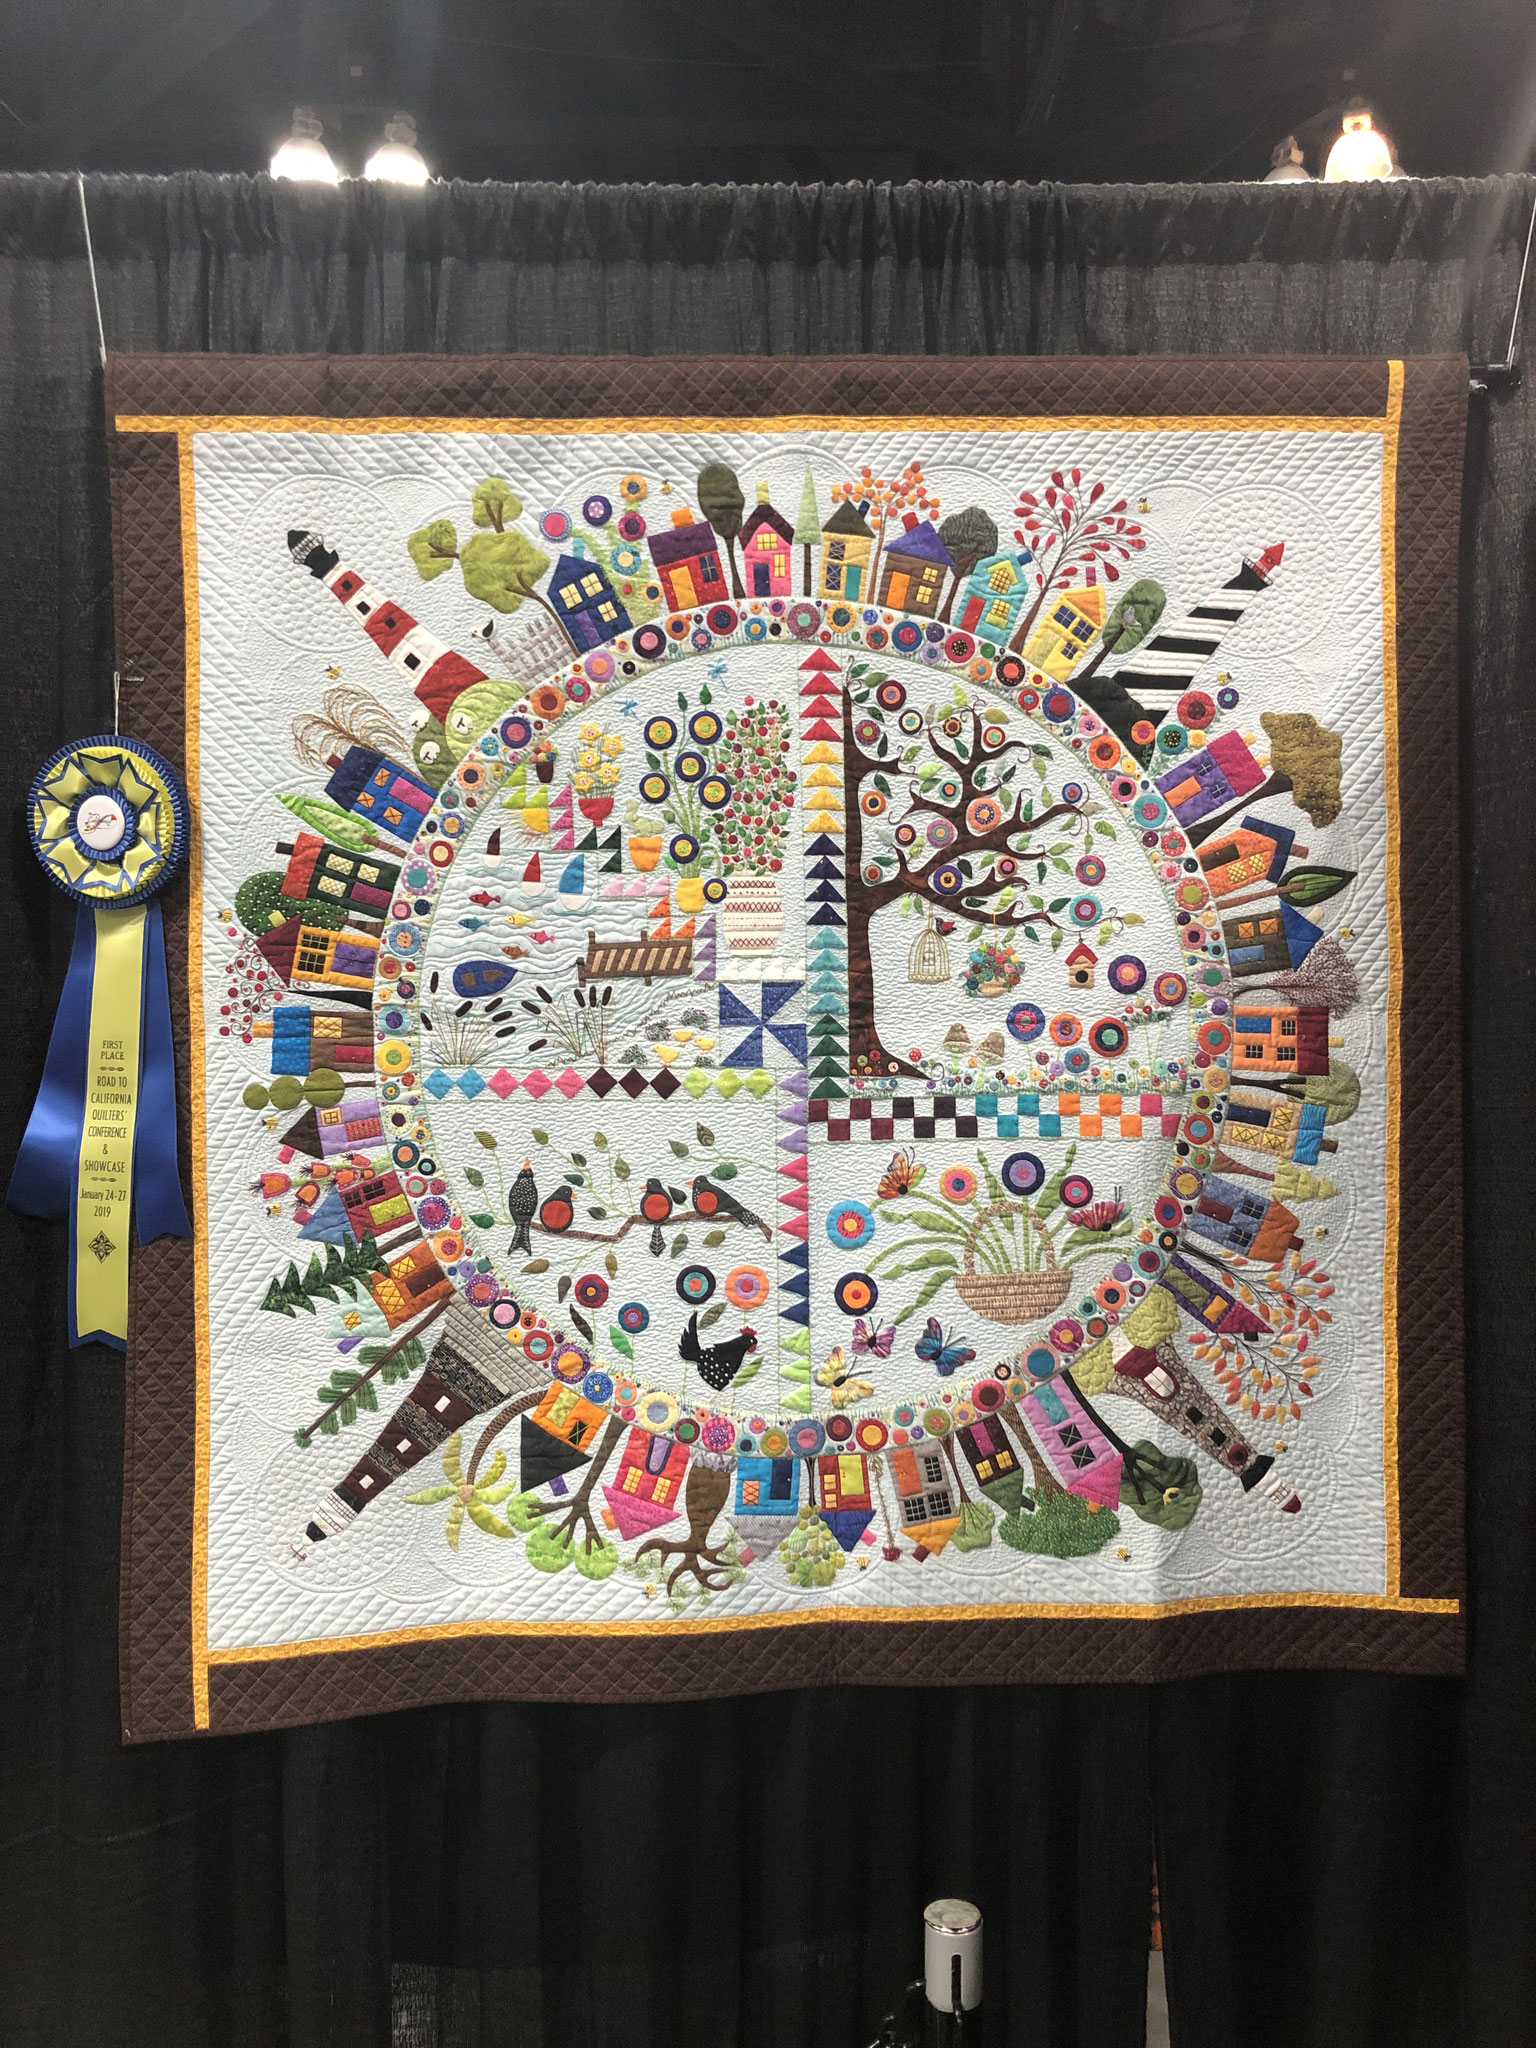 Show and Share -- May 2019 - Coachella Valley Quilt Guild